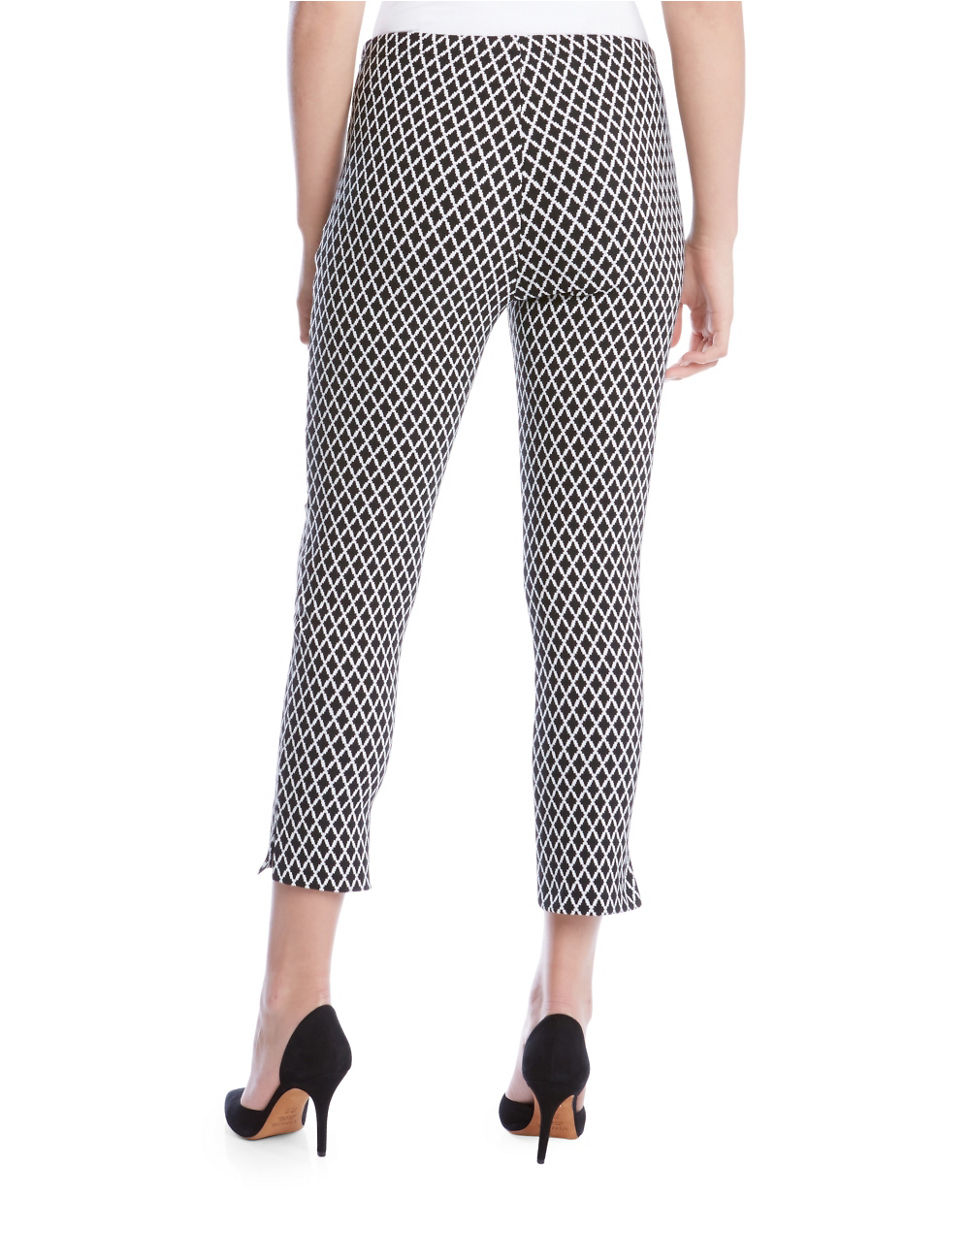 Shop floral print cropped pants at Neiman Marcus, where you will find free shipping on the latest in fashion from top designers.